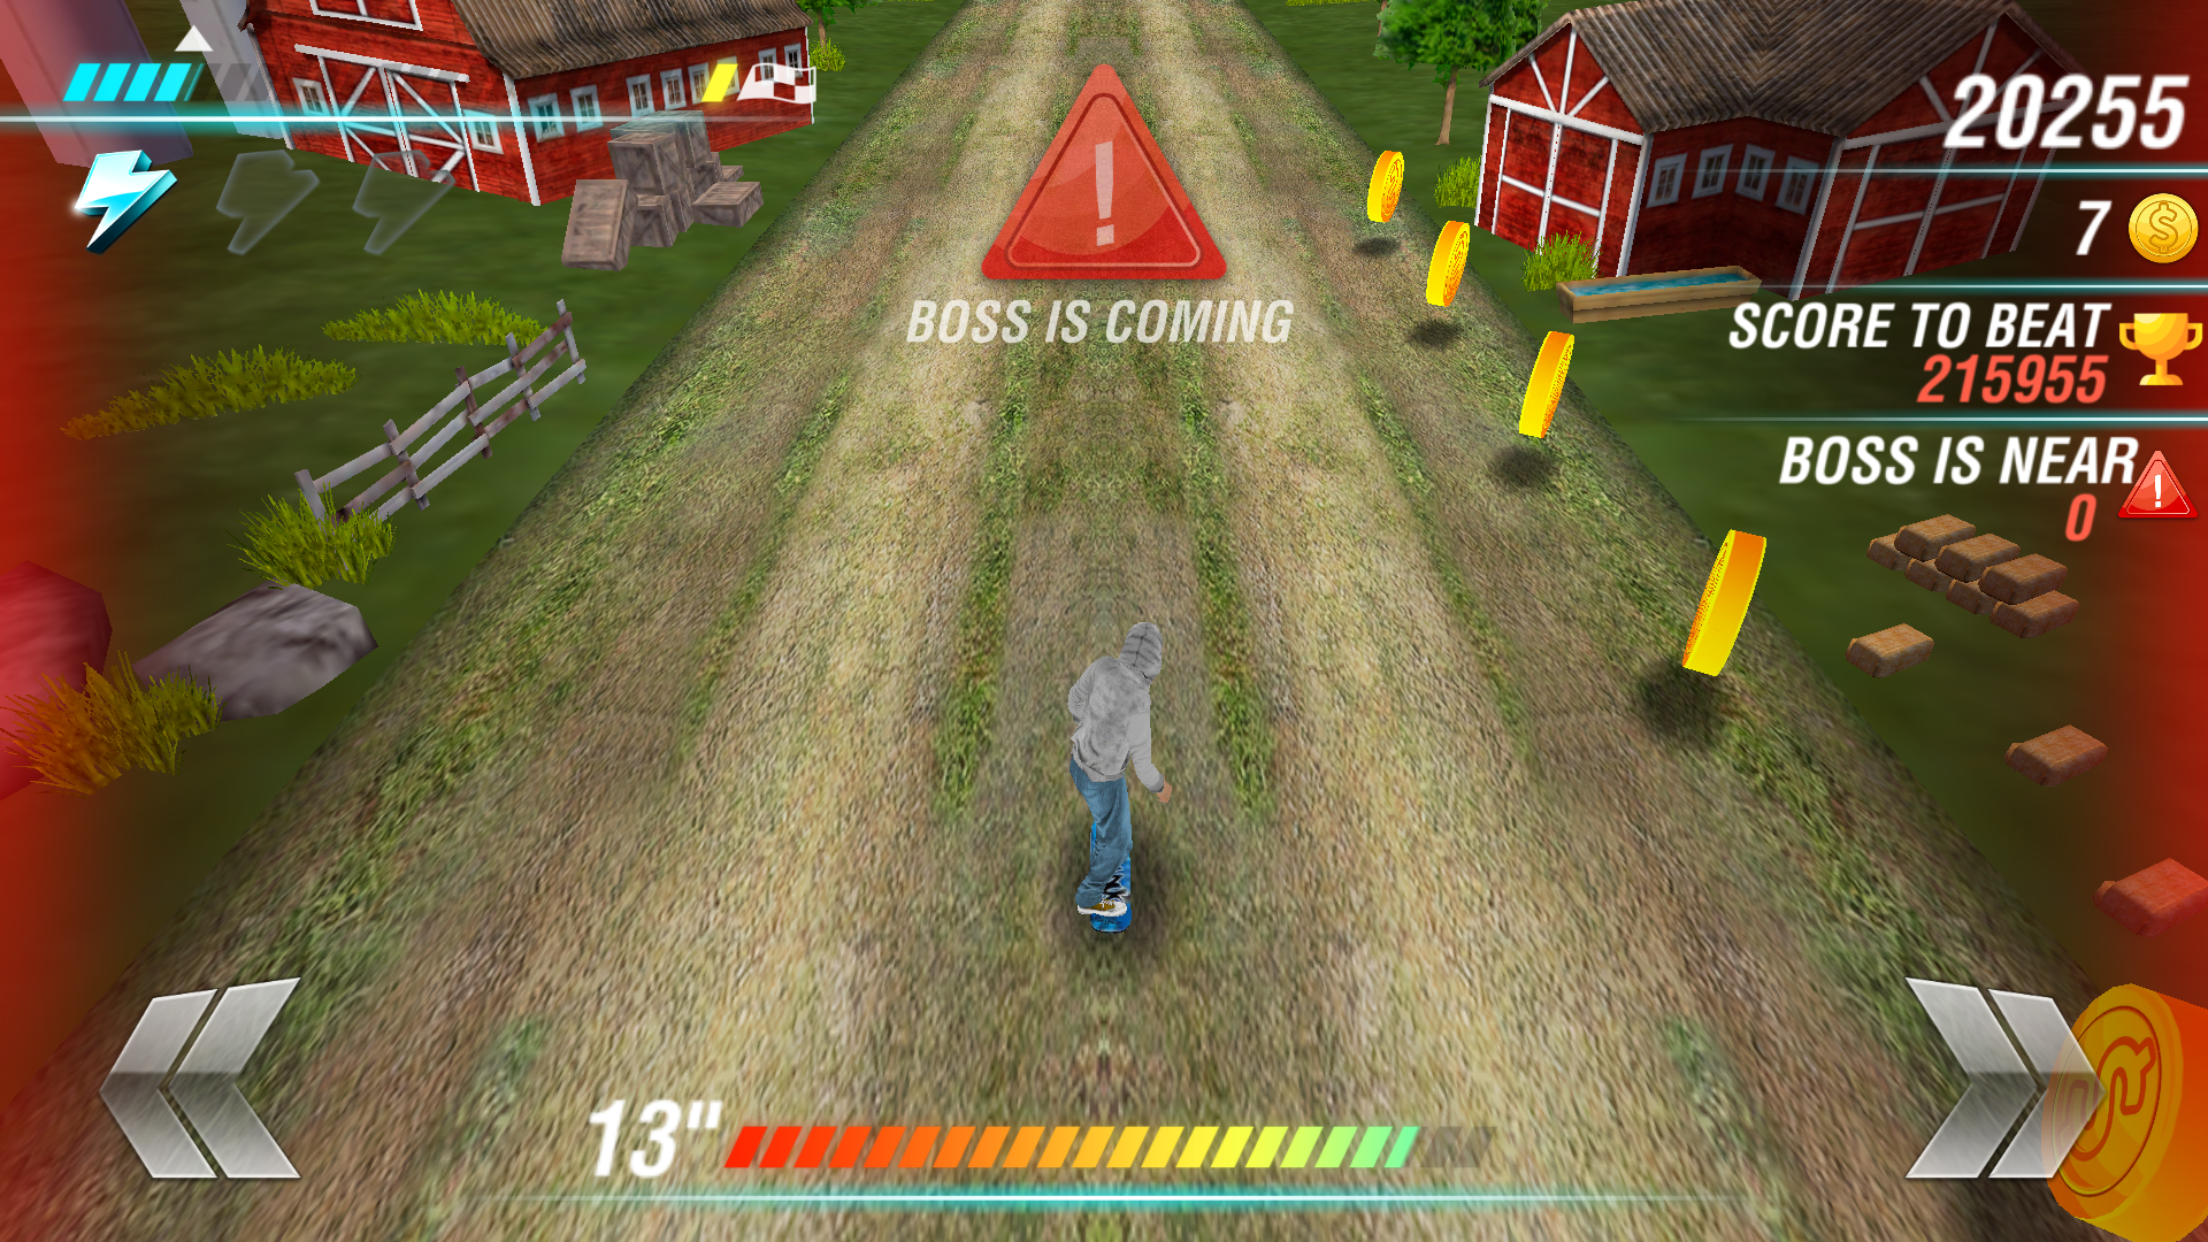 androidアプリ リアル スケートボード ヒーロー Real Skate Racing 3D攻略スクリーンショット3